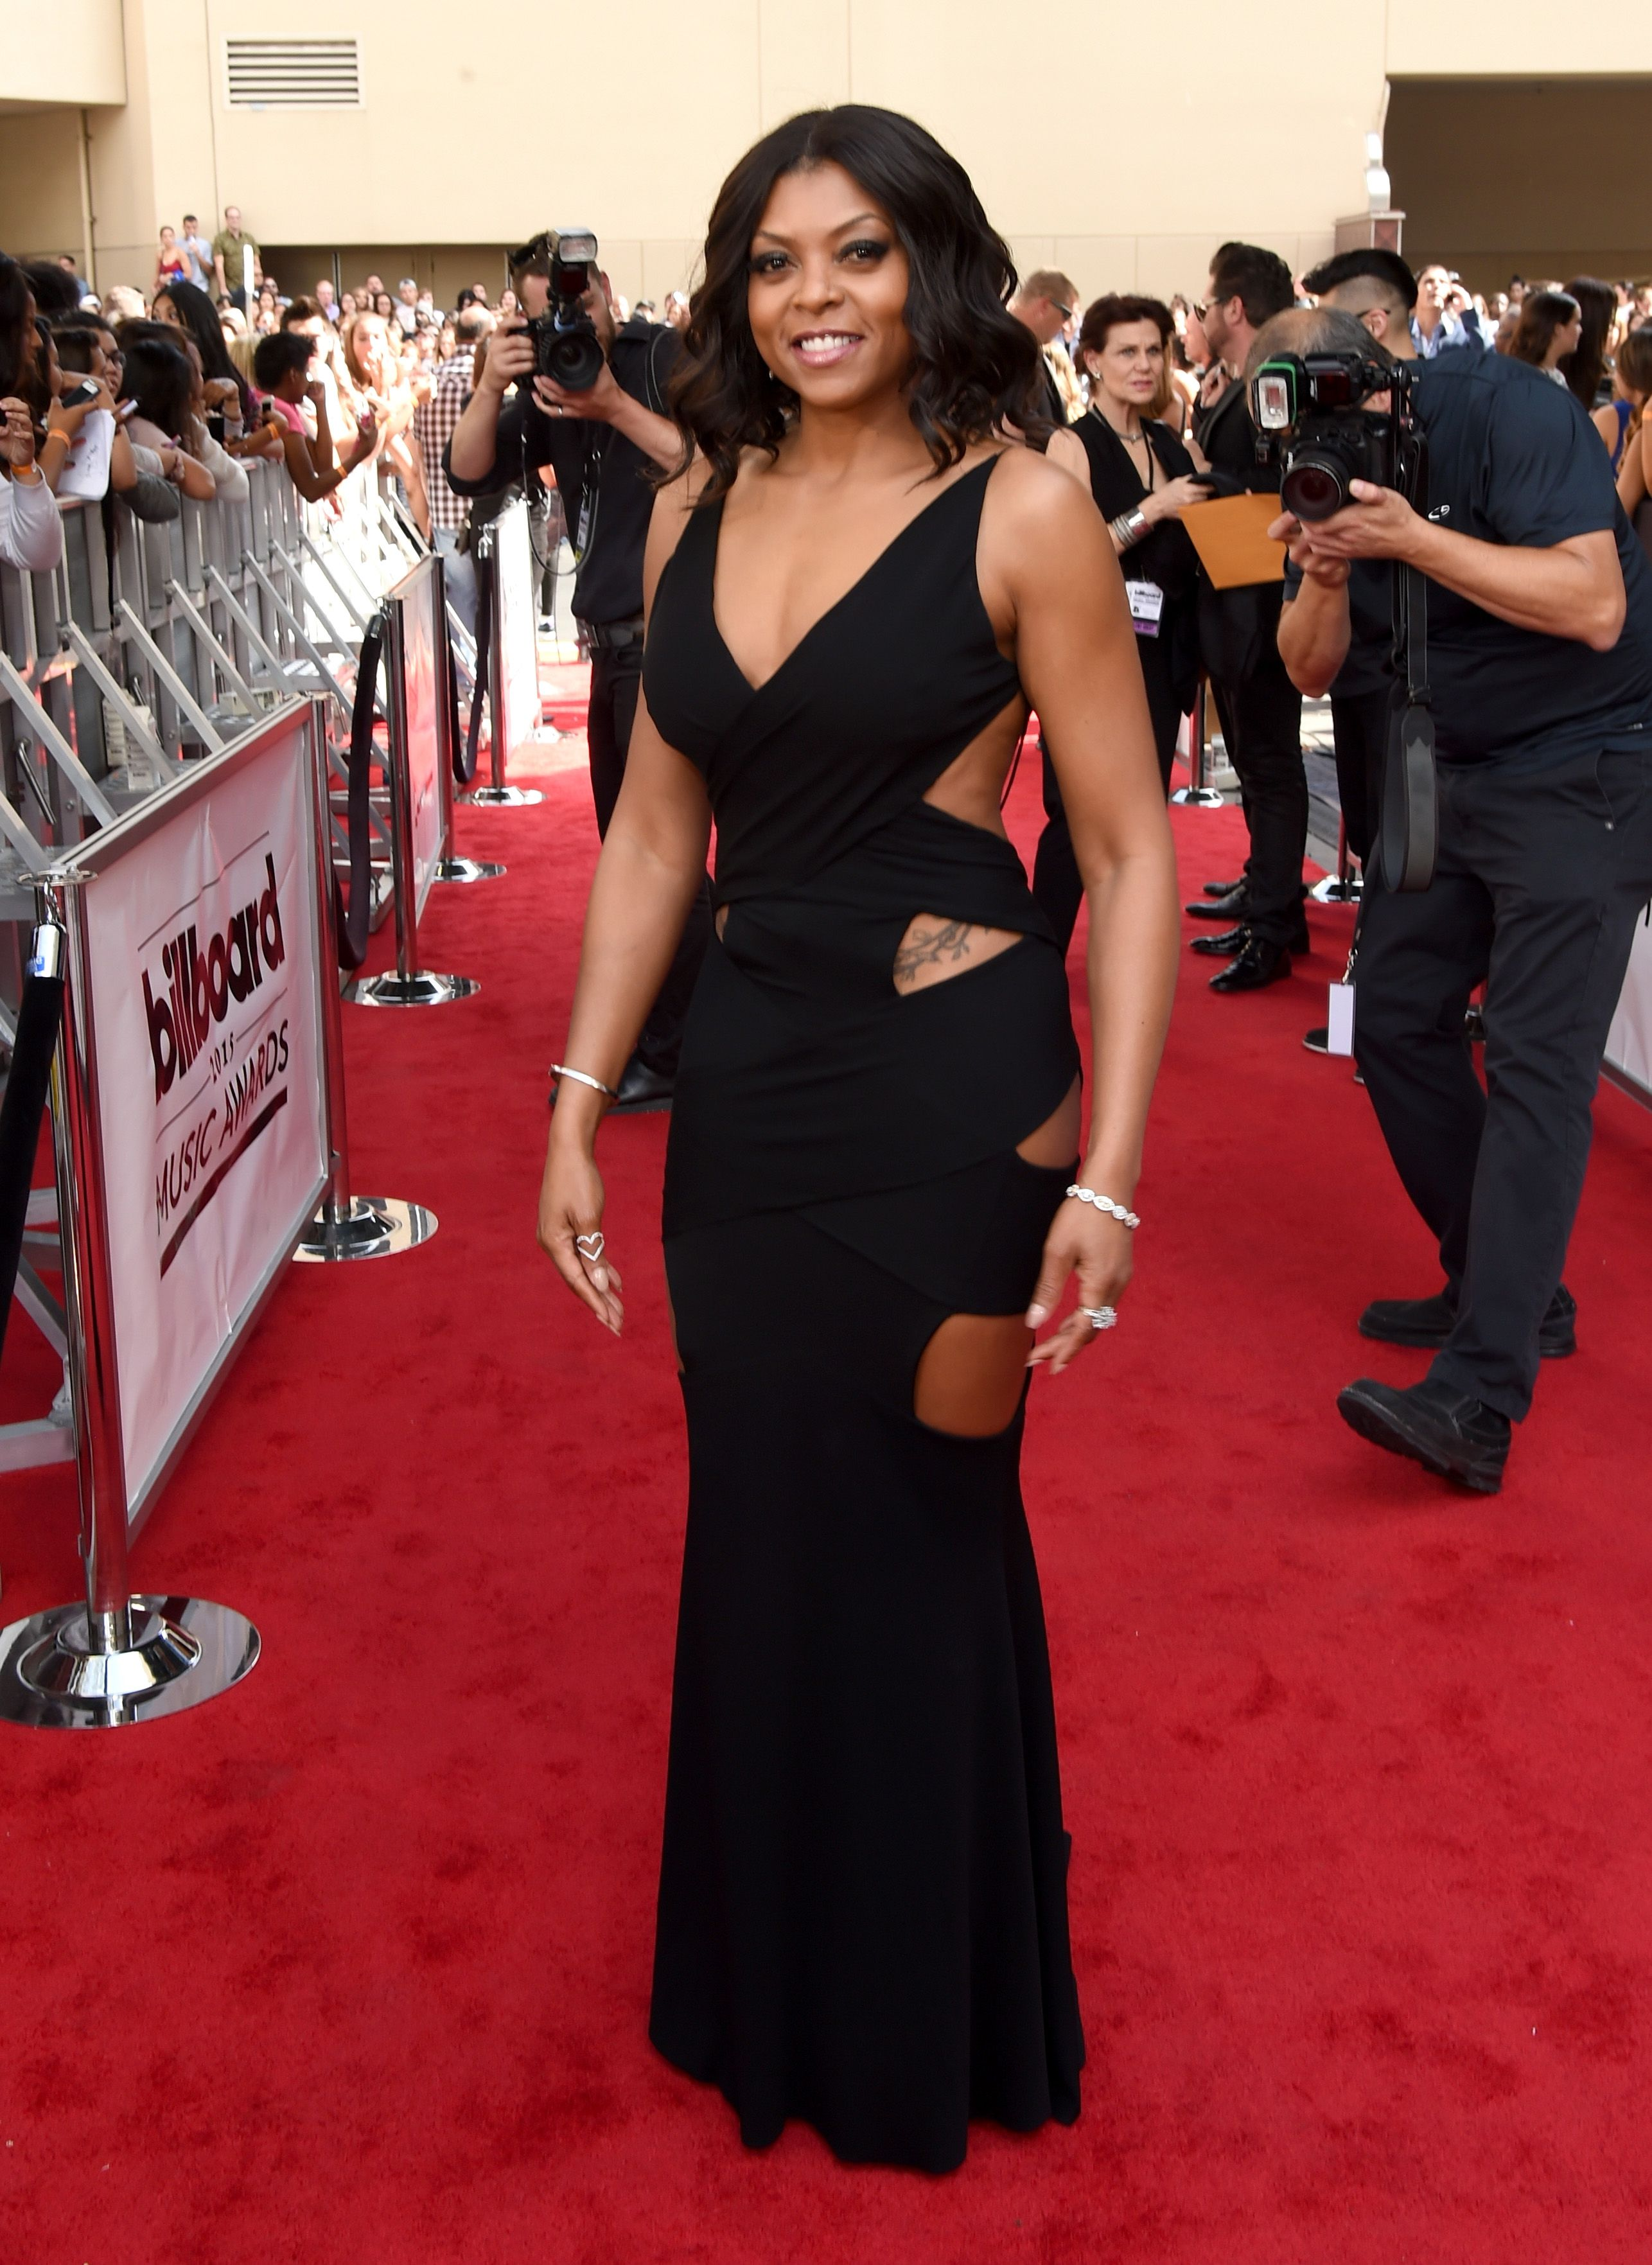 Taraji P. Henson during the 2015 Billboard Music Awards at MGM Grand Garden Arena on May 17, 2015 in Las Vegas, Nevada. | Source: Getty Images